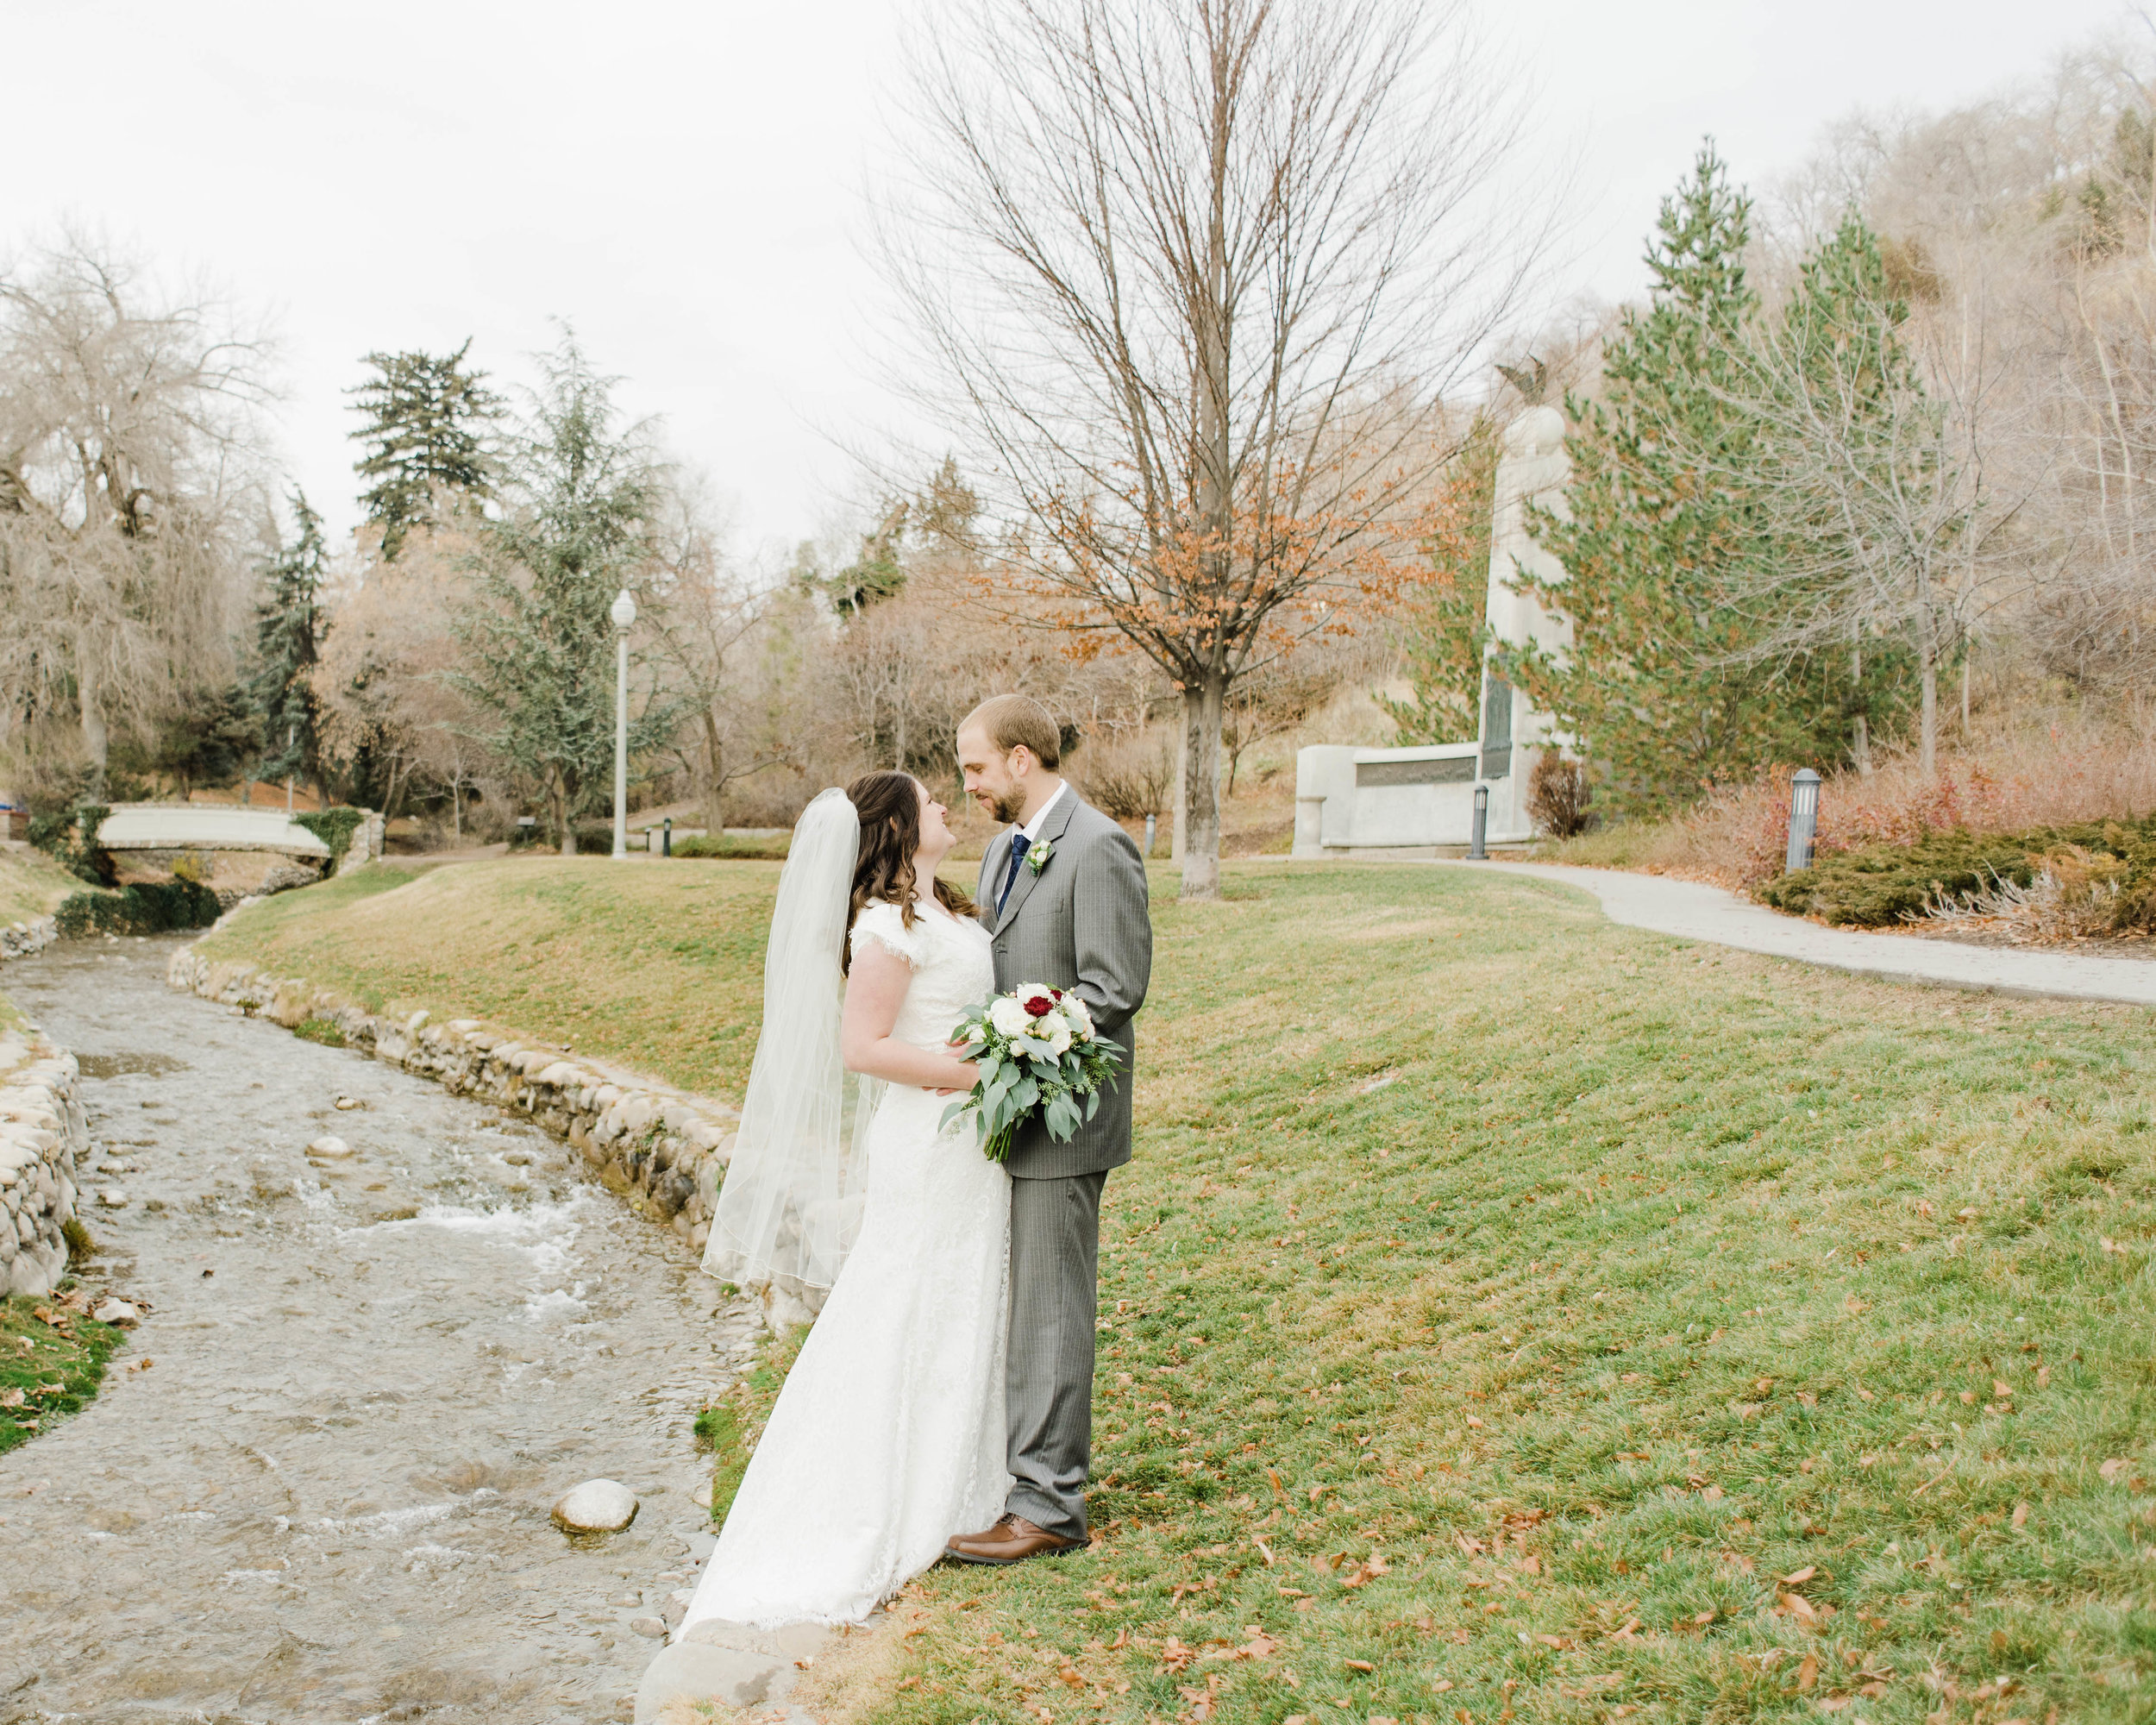 LINDSAY+BRAD-BRIDALS-Sadie_Banks_Photography-35.jpg